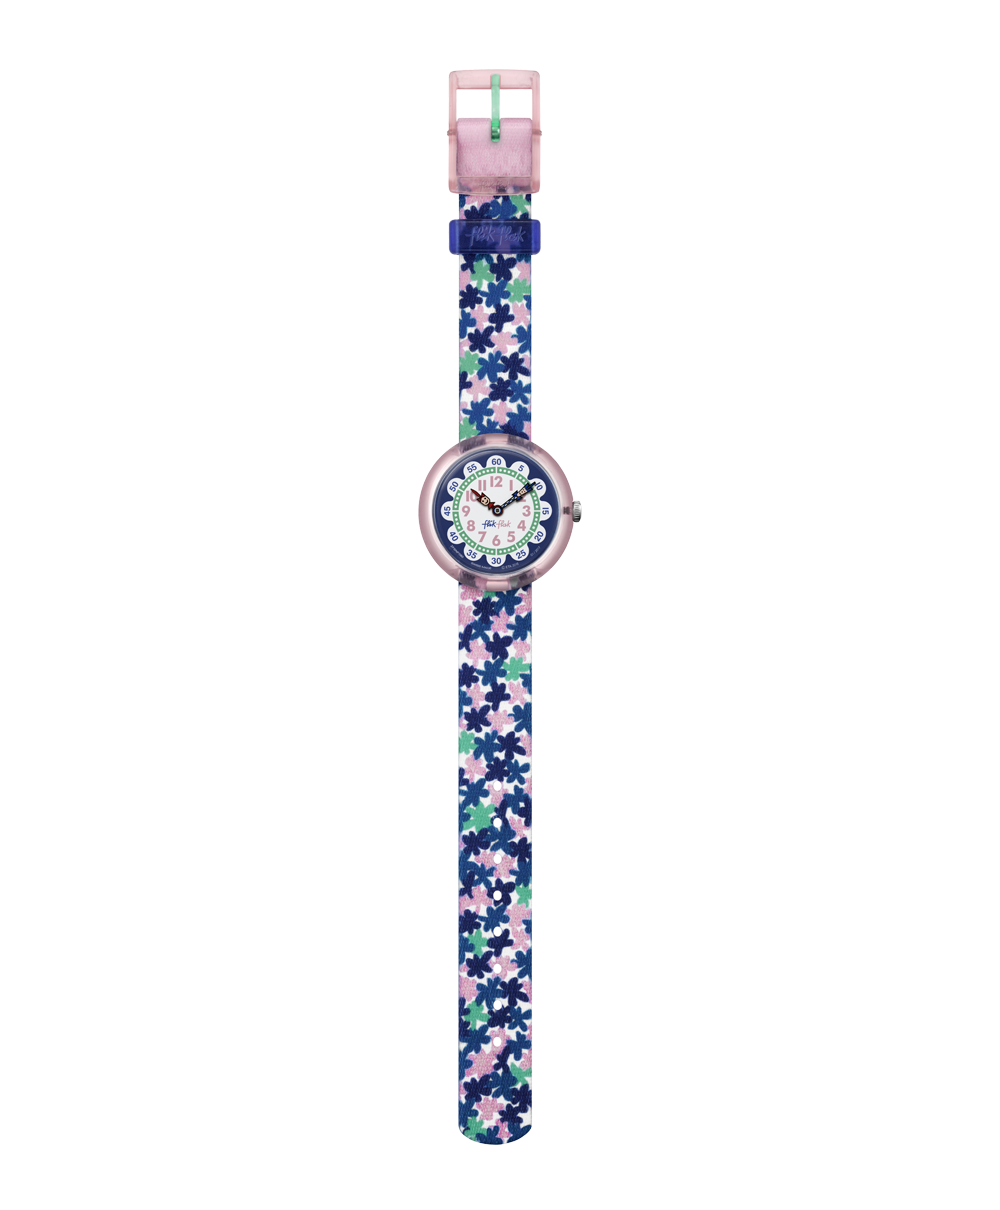 Reloj Flik Flak London Flower FBNP080